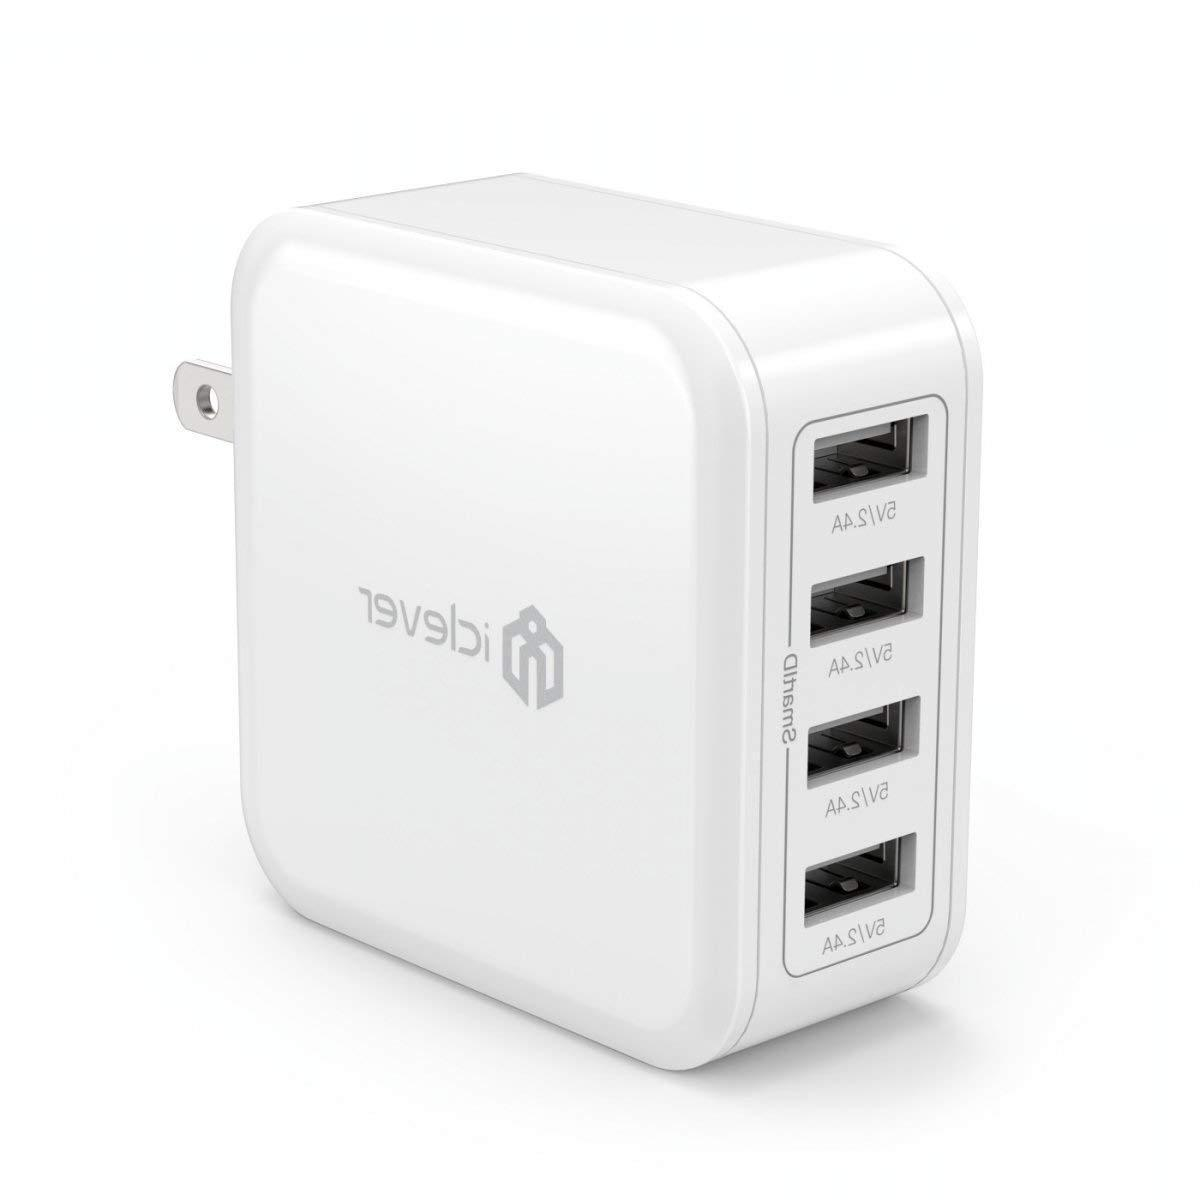 iClever BoostCube 40W 4-Port Universal USB Wall Charger with